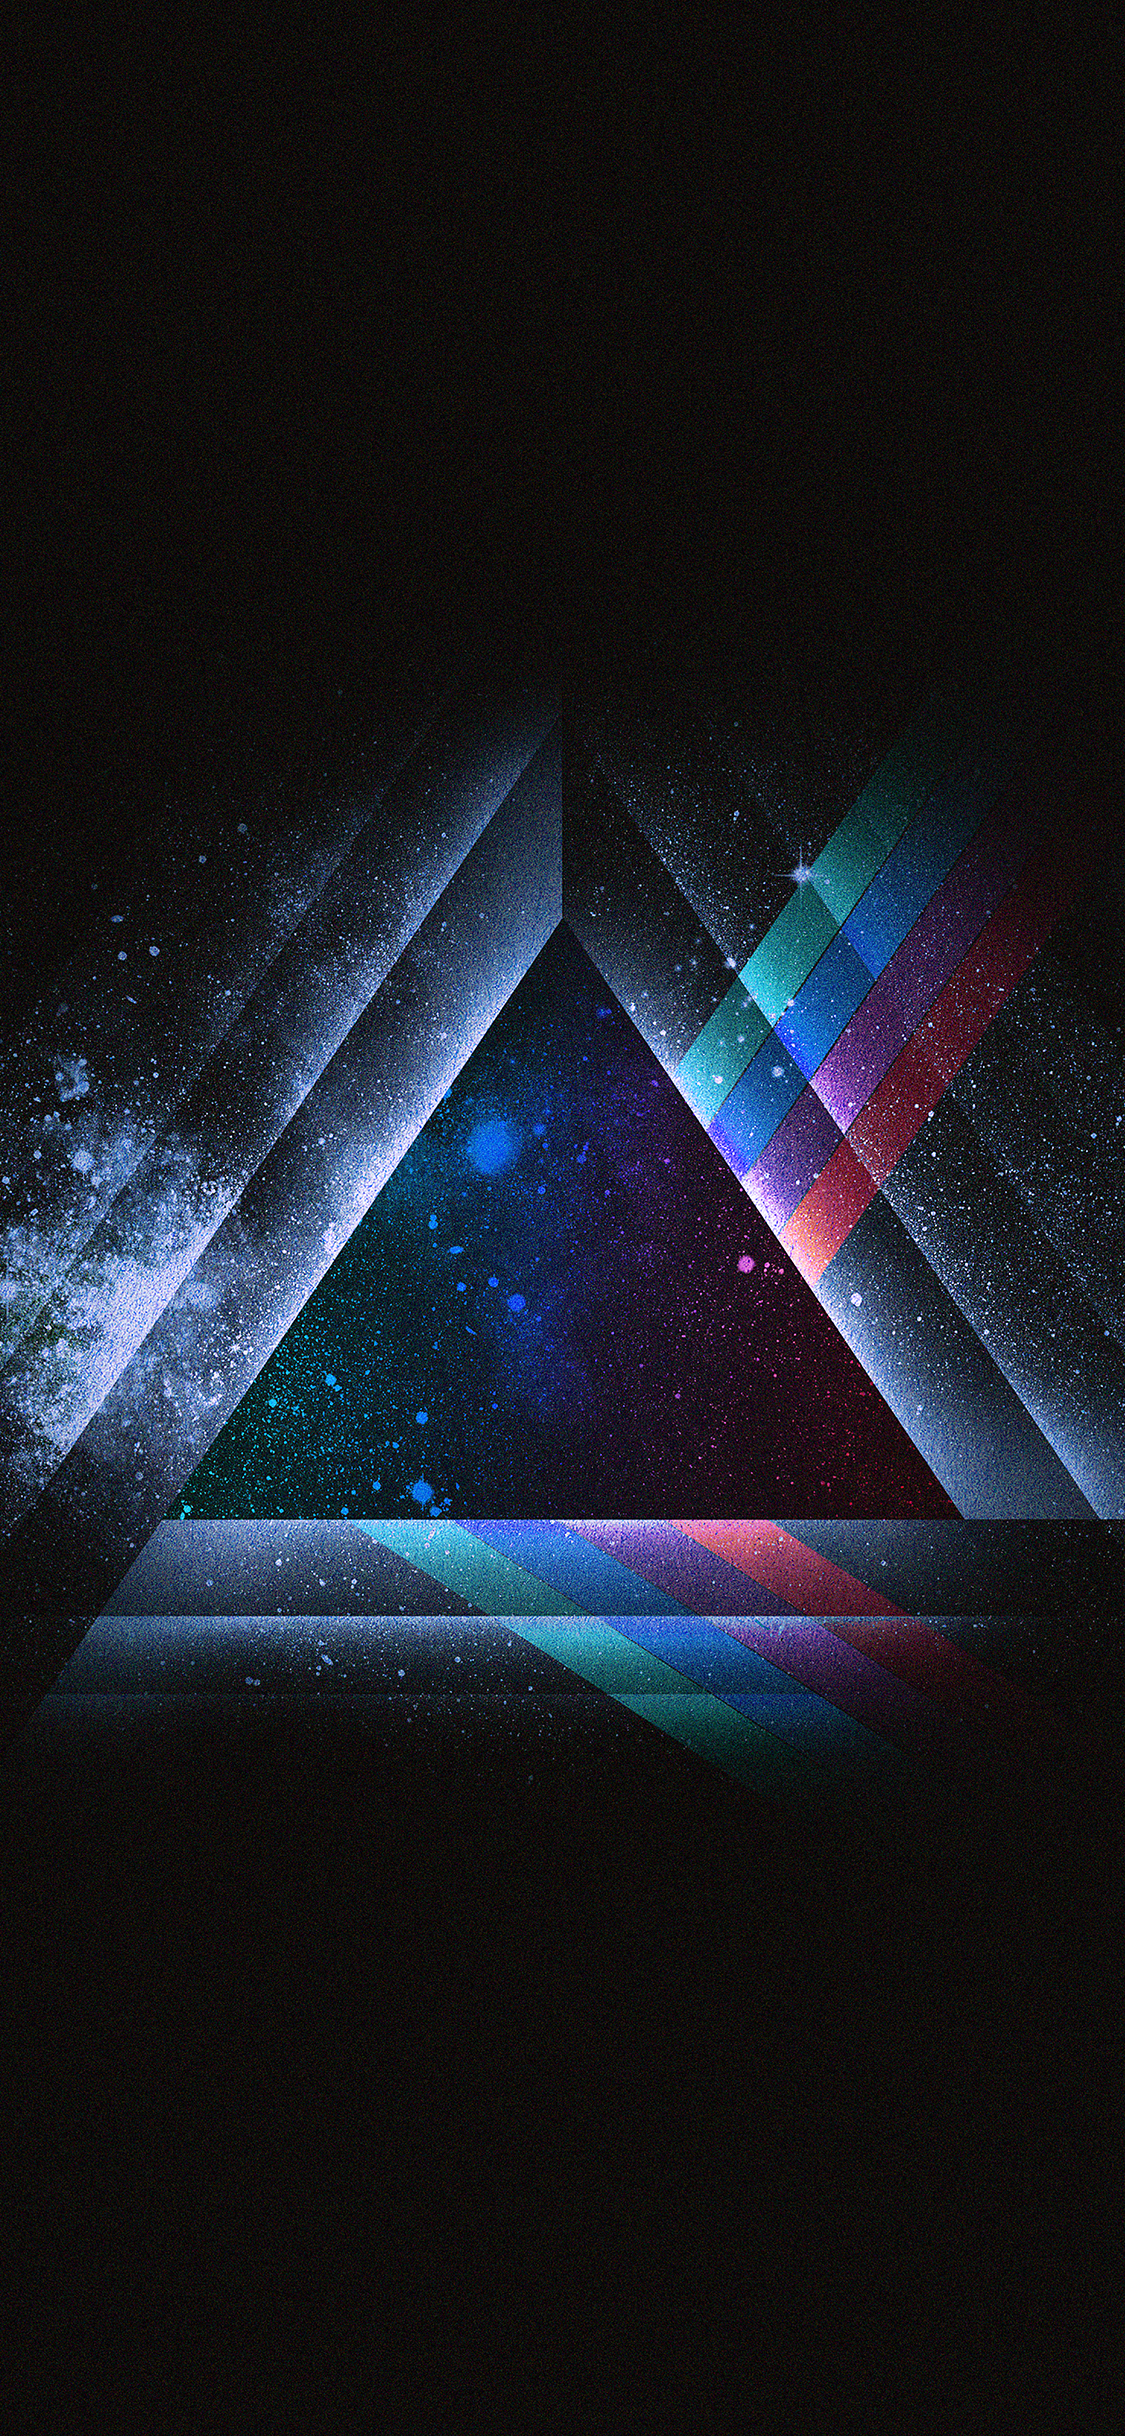 iPhoneXpapers.com-Apple-iPhone-wallpaper-ac08-wallpaper-triangle-art-blue-rainbow-illust-graphic